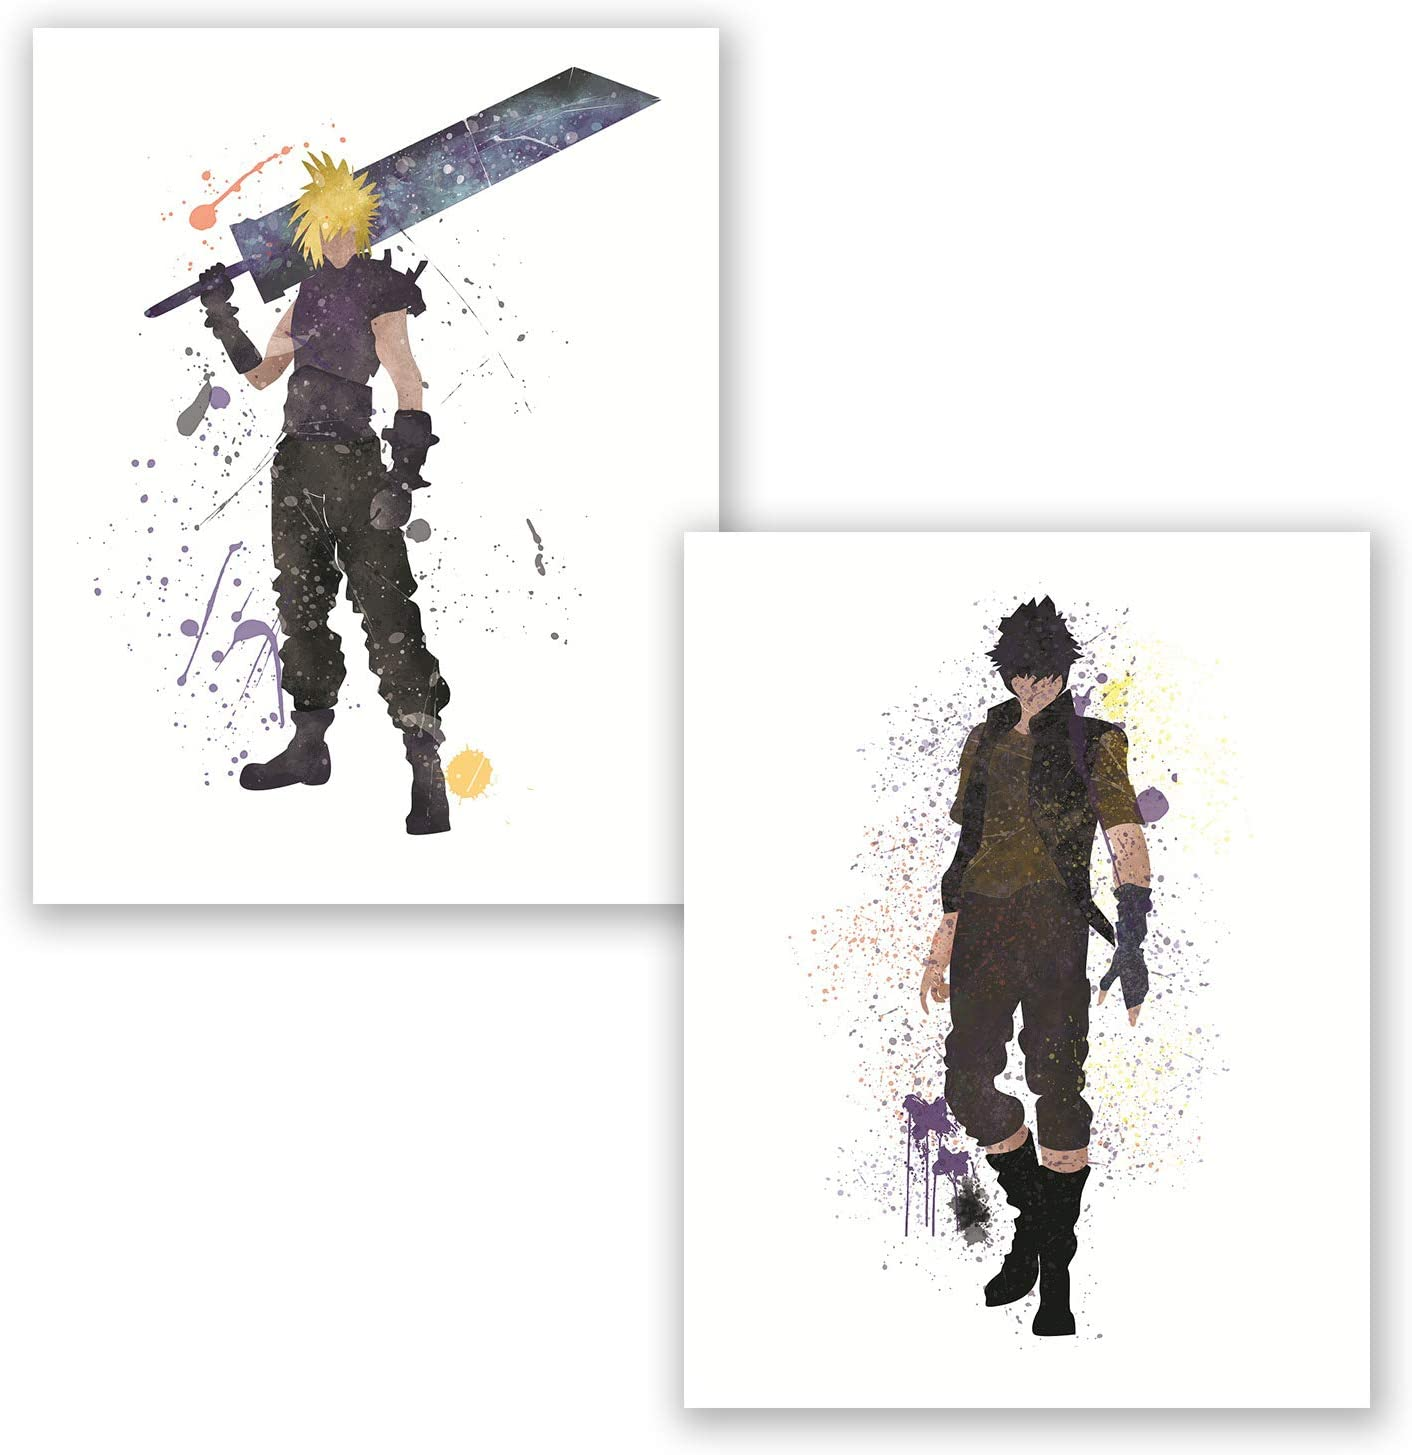 Final Fantasy Poster - Set of 2 Posters - Cloud Strife - Noctis Lucis - Watercolor Inspired Home Art Prints - Bedroom Decor for Gamers (Set, 8x10)